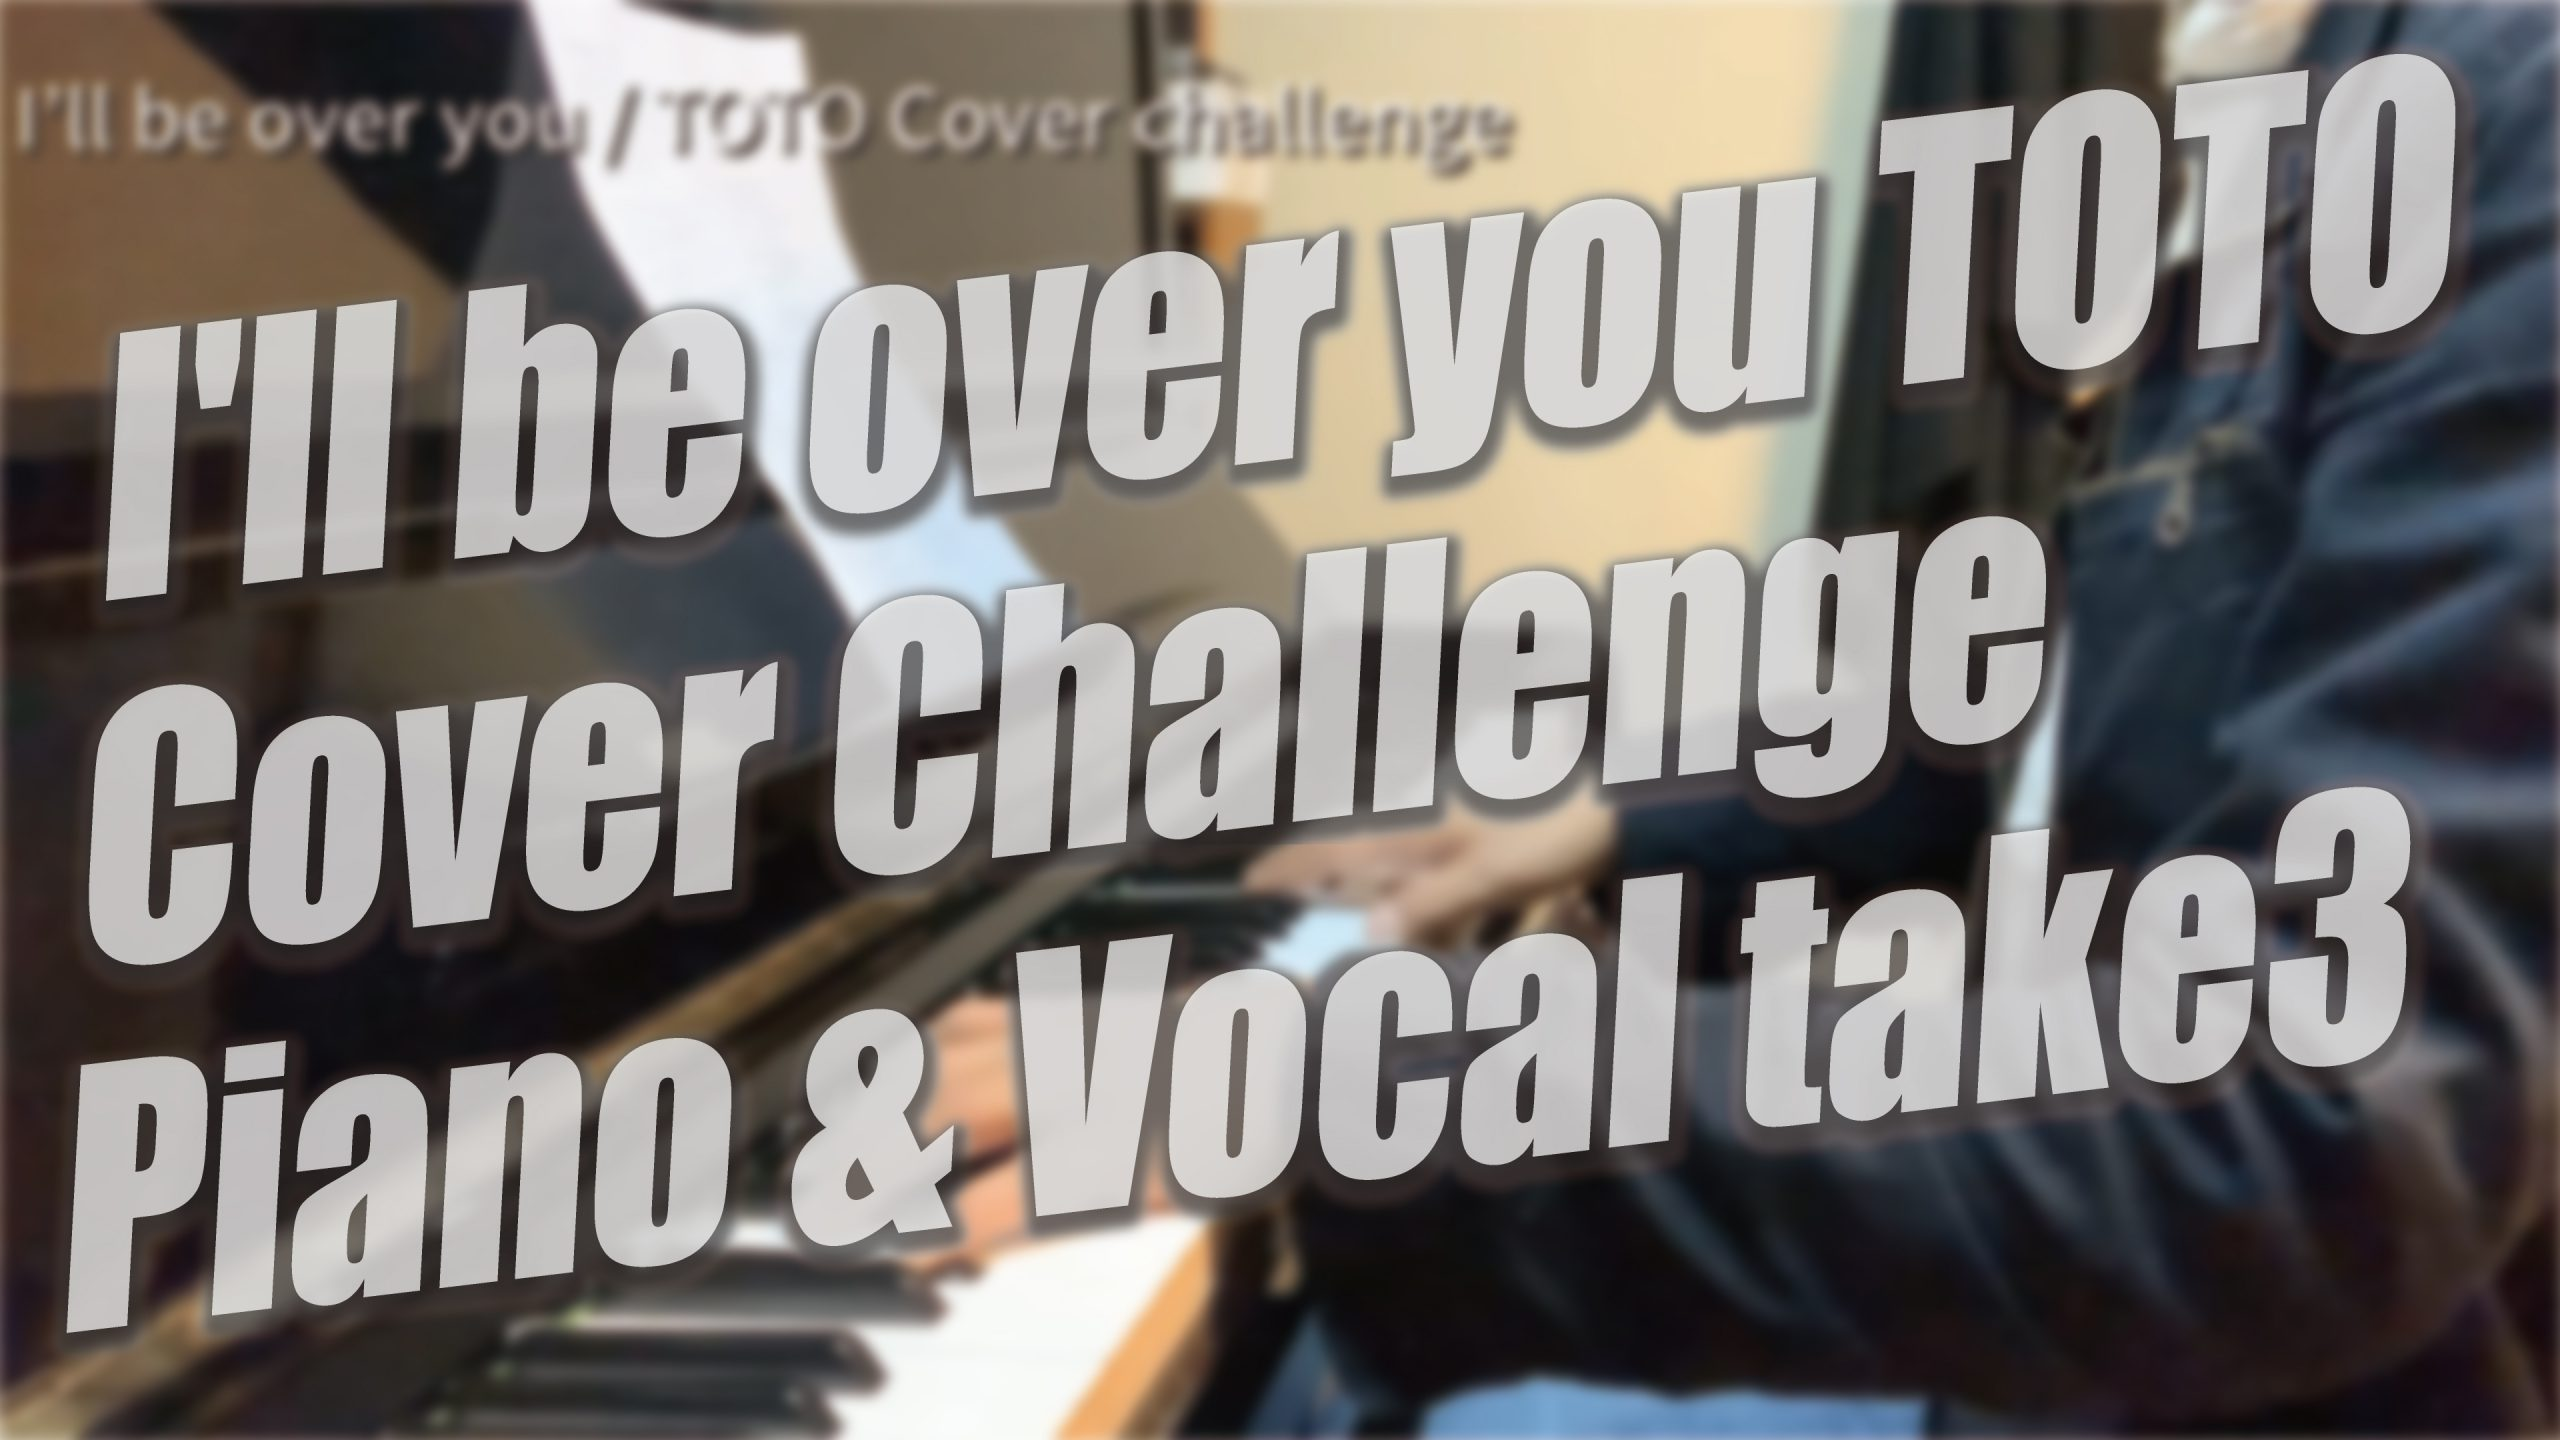 I'll be over you / TOTO Piano Cover Challege!TAKE#3|いきなりはやっぱできんなww